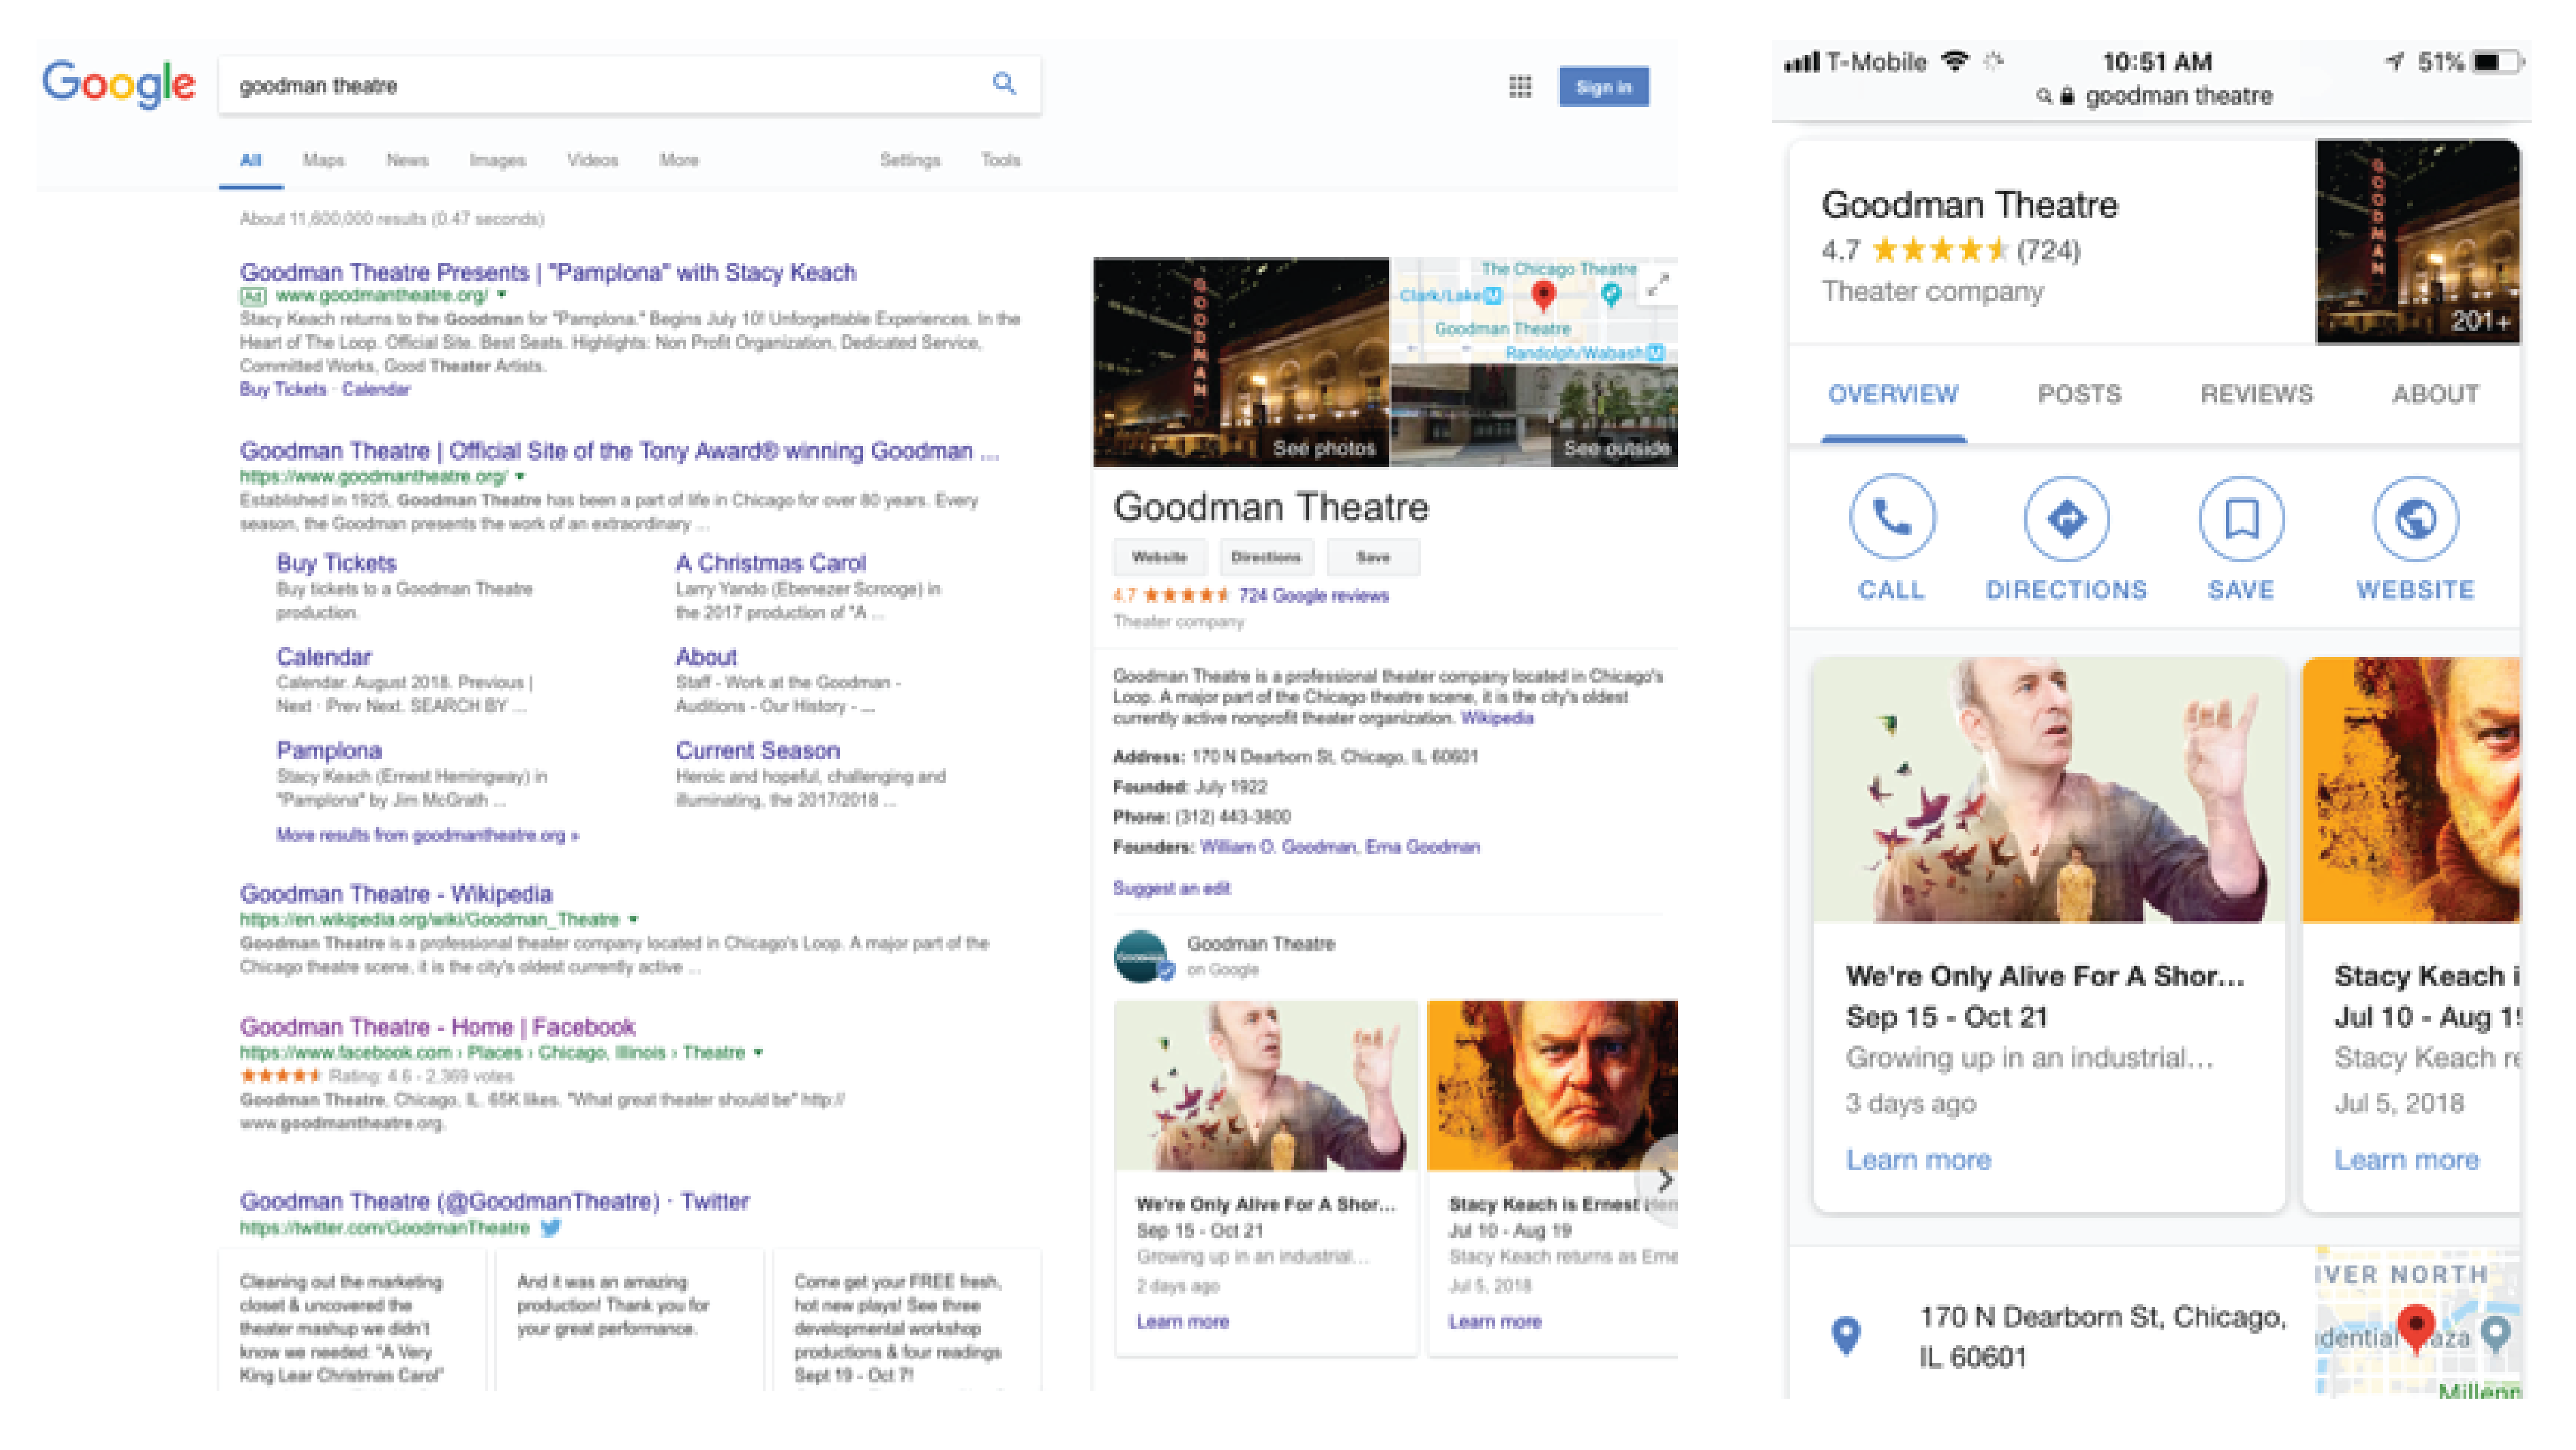 Google My Business for The Goodman Theatre (left: desktop; right: mobile)